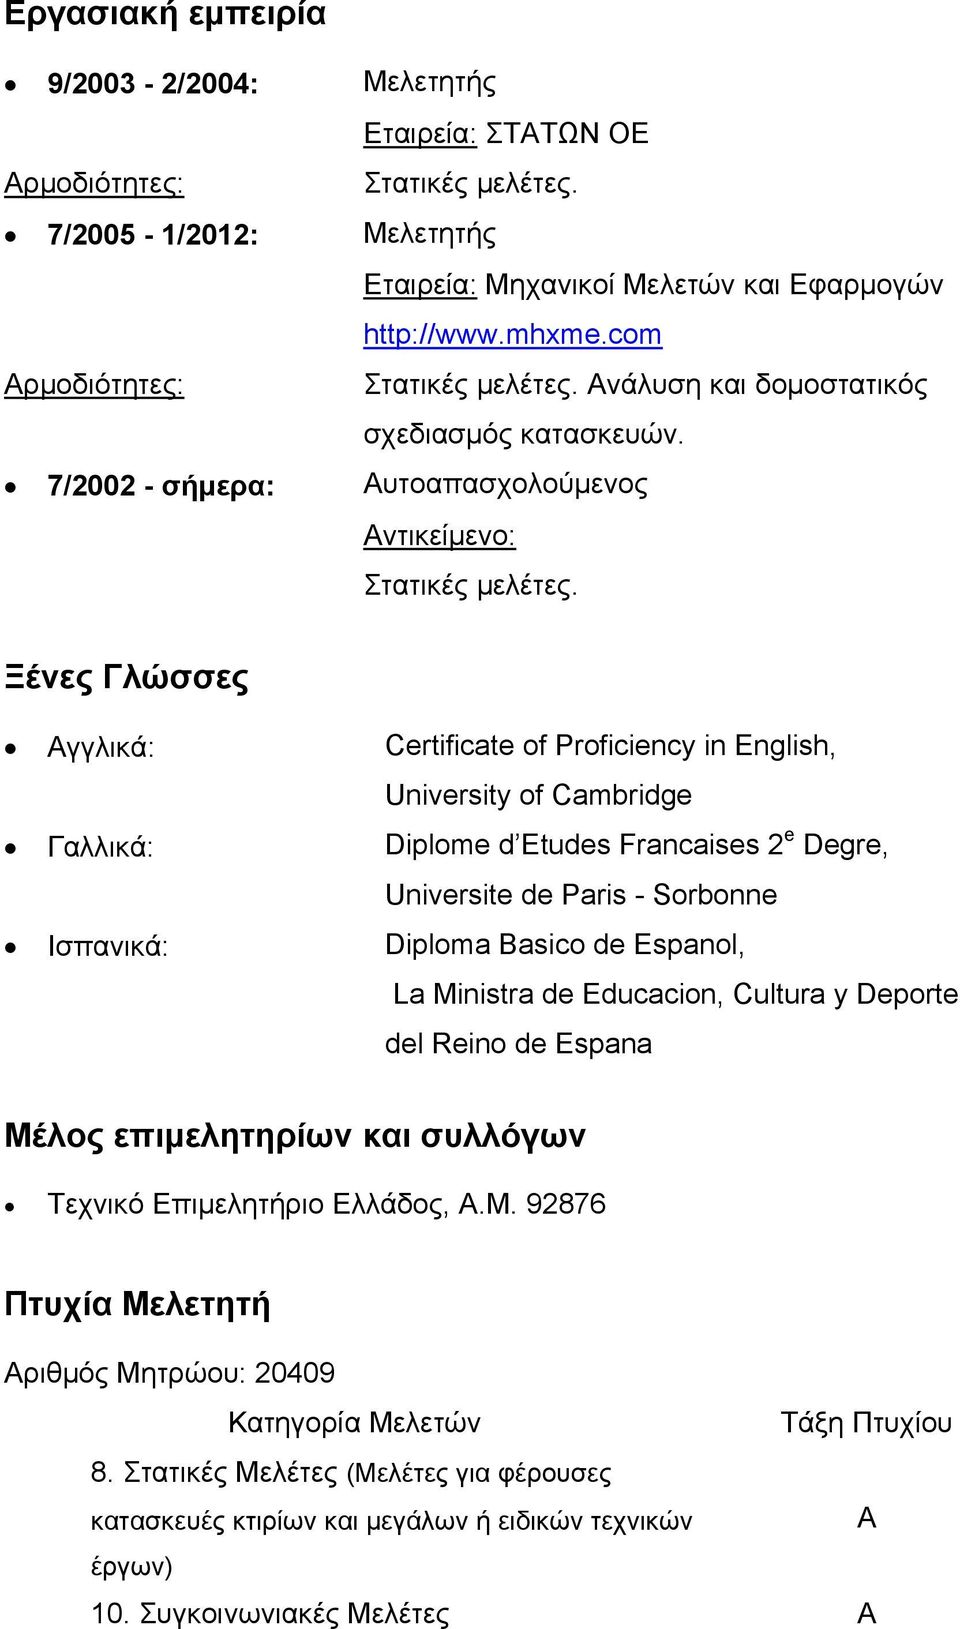 Ξένες Γλώσσες Αγγλικά: Certificate of Proficiency in English, University of Cambridge Γαλλικά: Diplome d Etudes Francaises 2 e Degre, Universite de Paris - Sorbonne Ισπανικά: Diploma Basico de